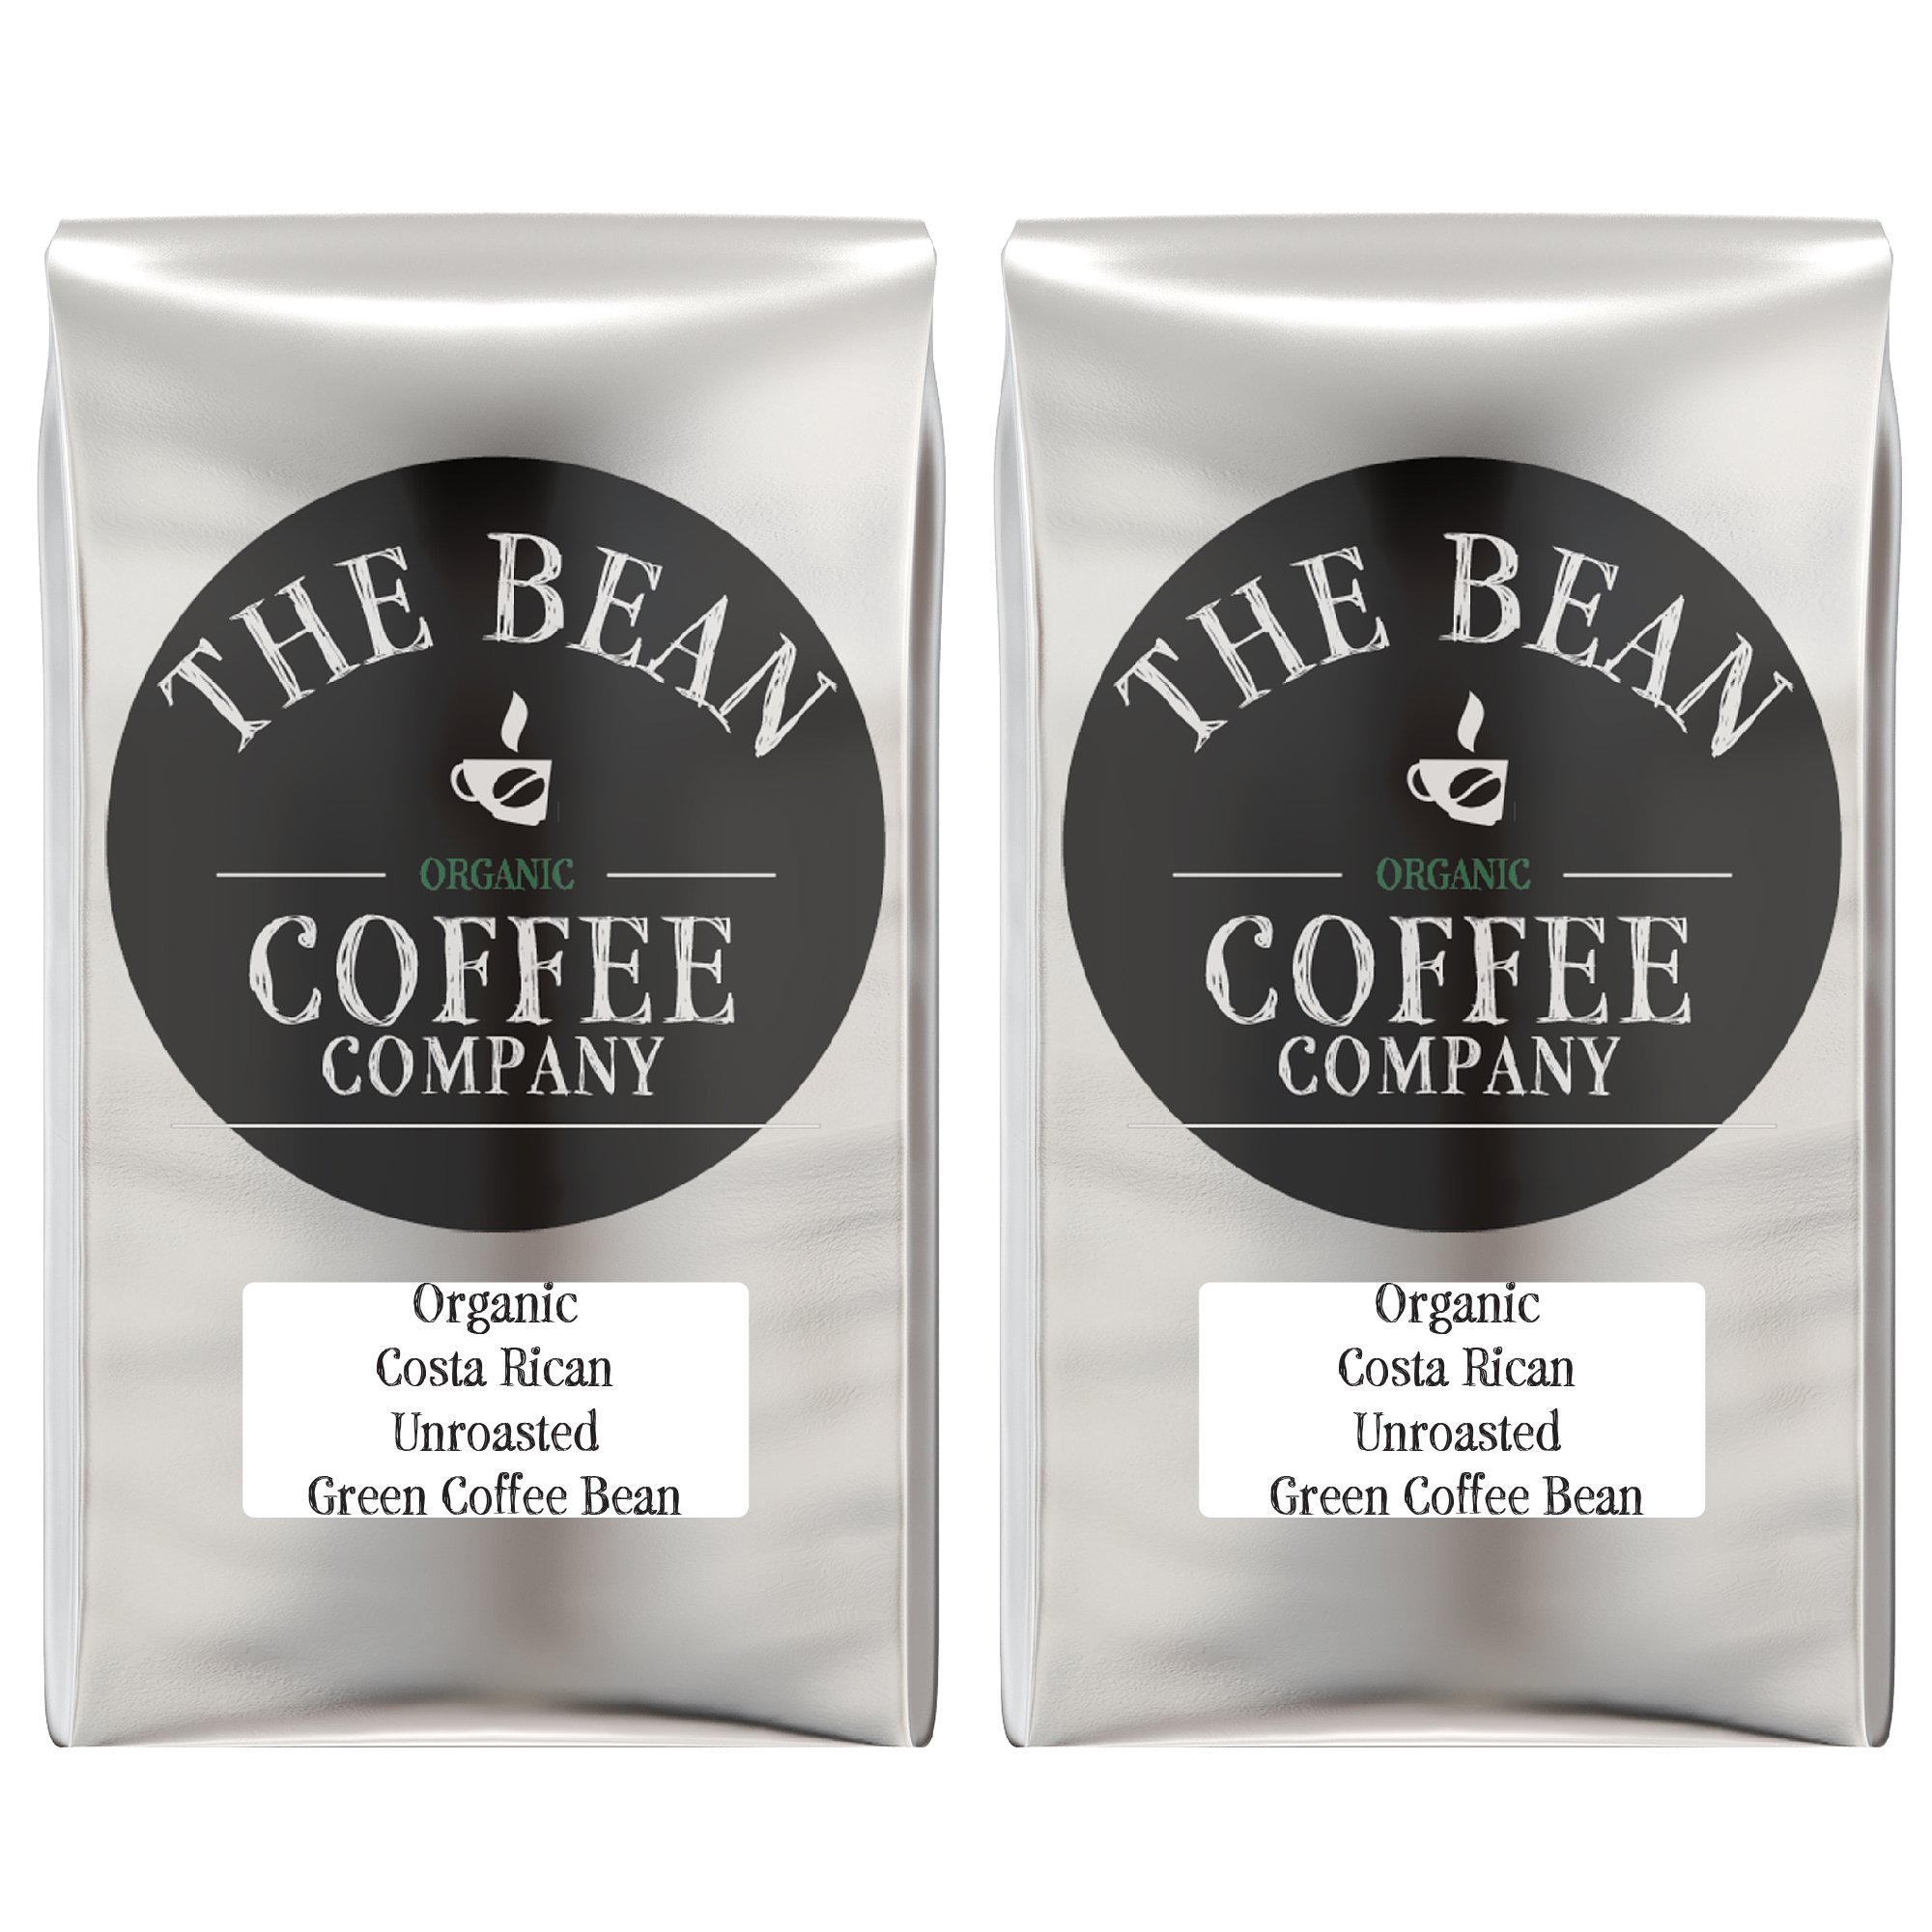 The Bean Coffee Company Organic Unroasted Green Coffee Beans, Costa Rican, 16-Ounce Bags (Pack of 2)